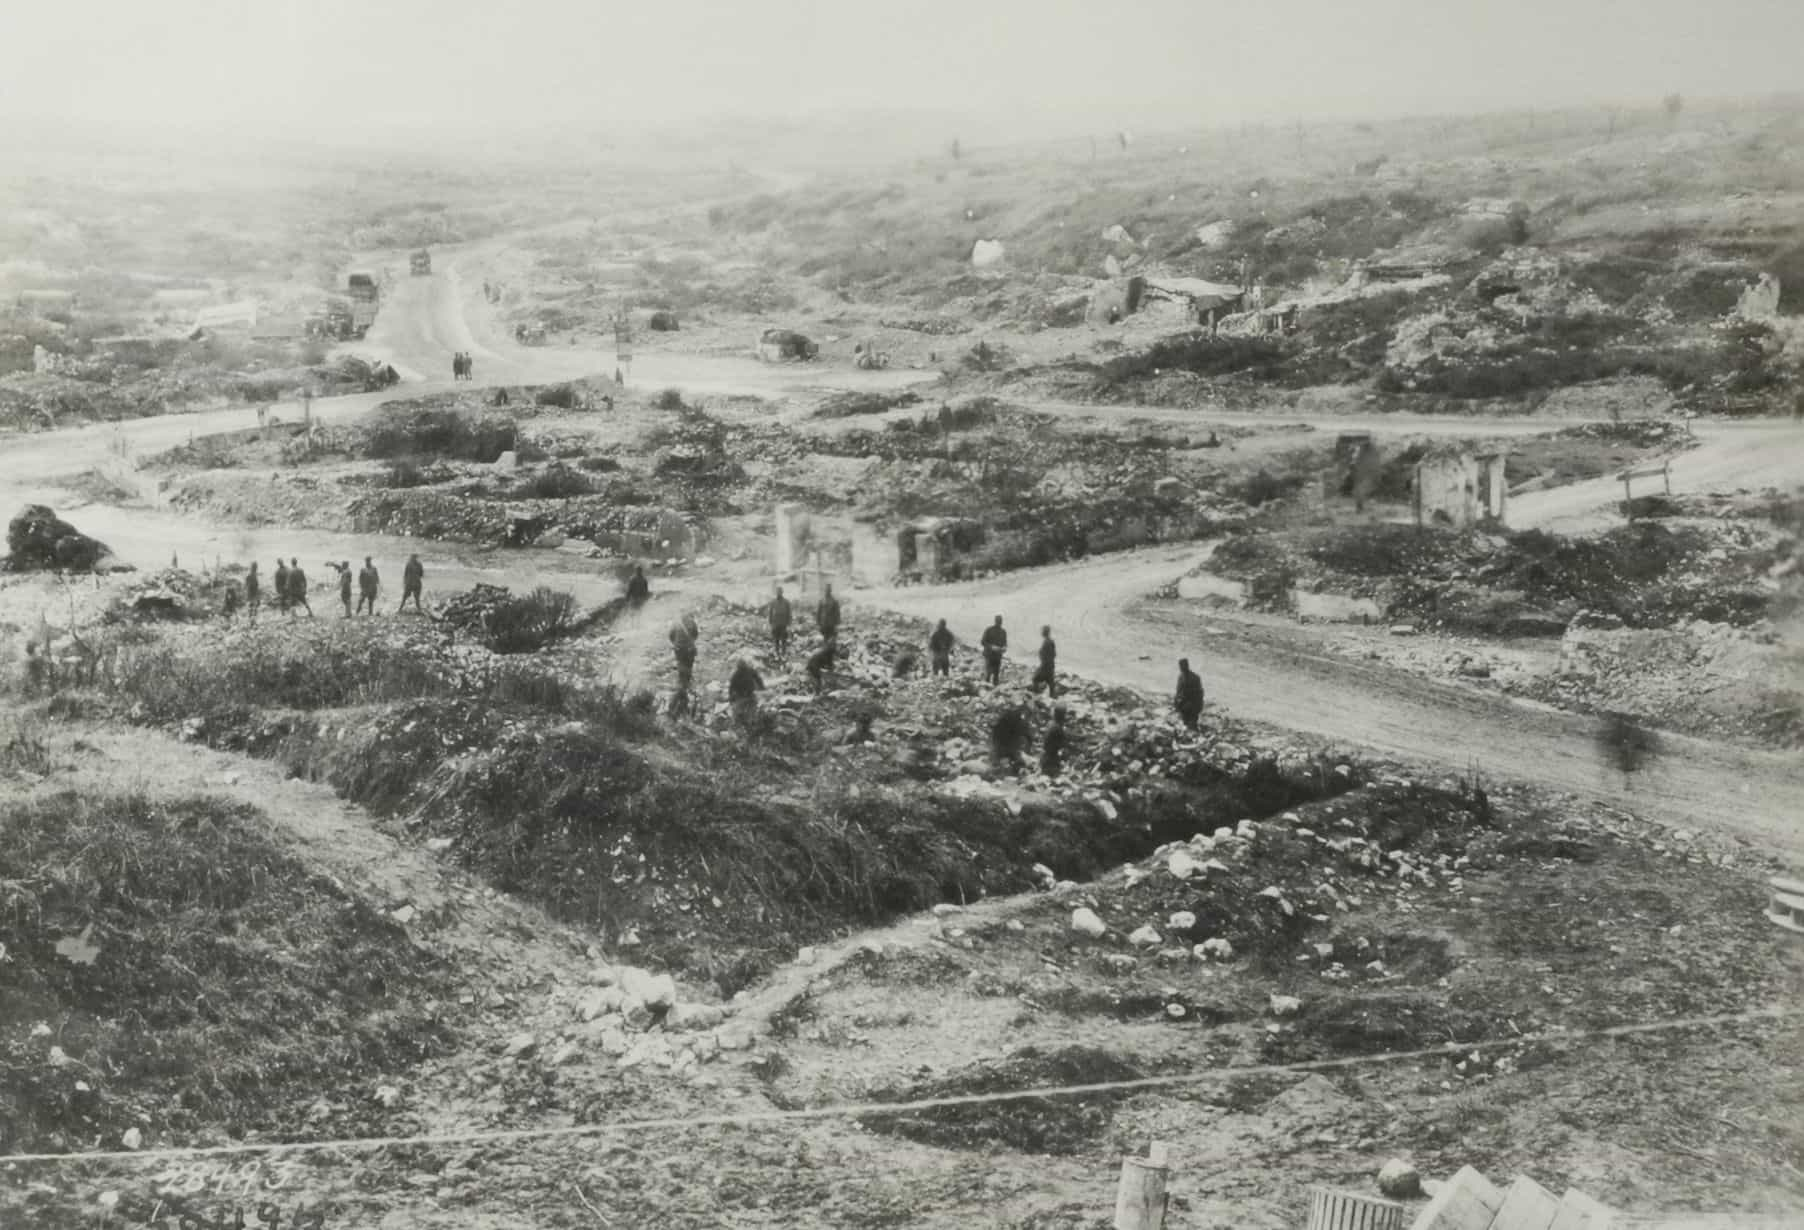 The roads in Avocourt a month after the capture of Montfaucon.  The supply lines of three divisions converged on this junction during the assault. This is the labyrinth that Private Cain tried unsuccessfully to navigate in the dark during the battle. (AHEC)